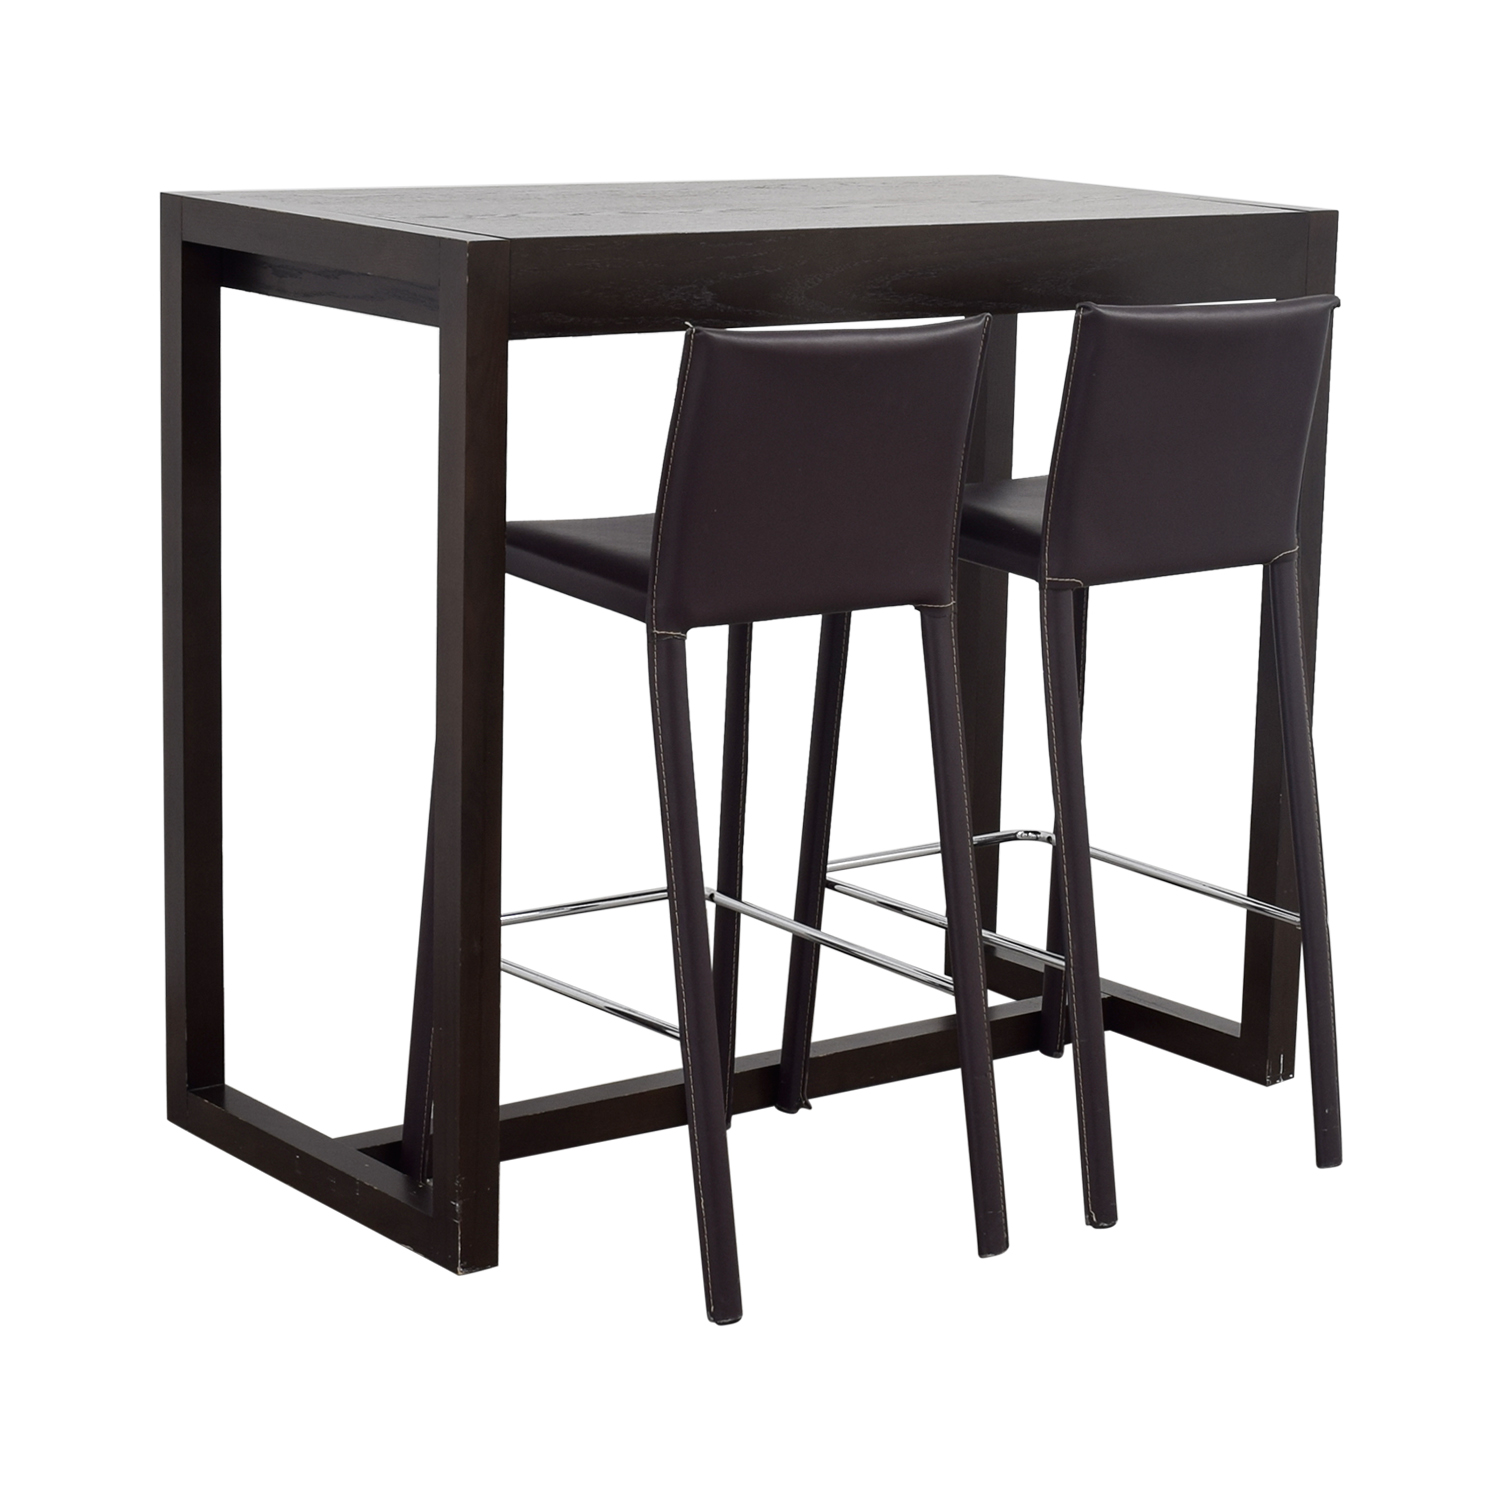 Square Expanding Table Second Hand Bar Tables Gallery Bar Height Dining Table Set